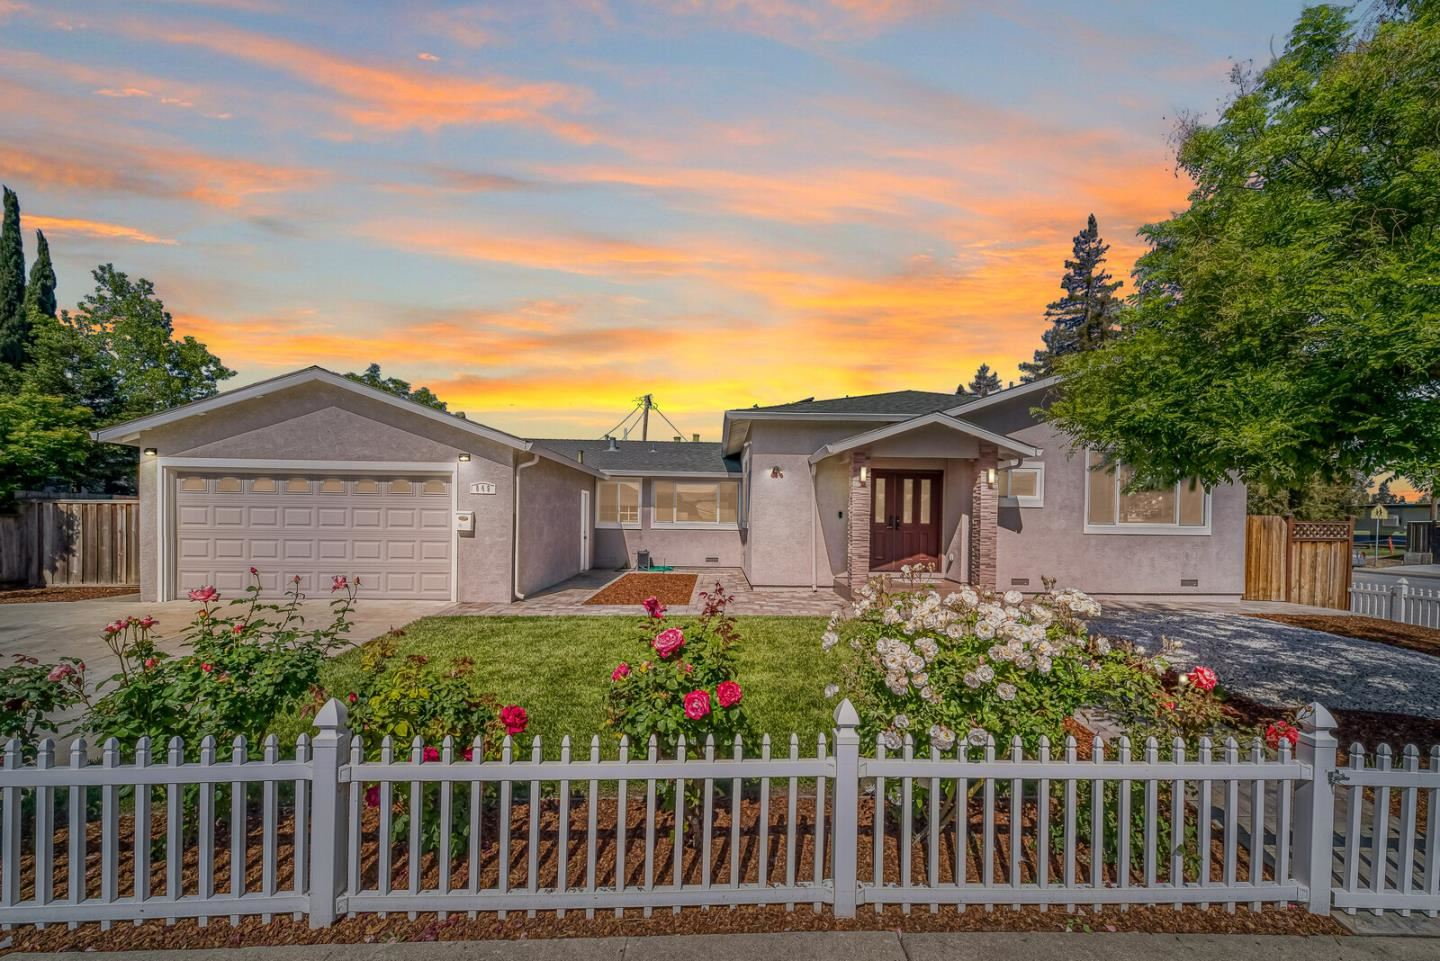 Photo for 849 Coyote Street, MILPITAS, CA 95035 (MLS # ML81841168)